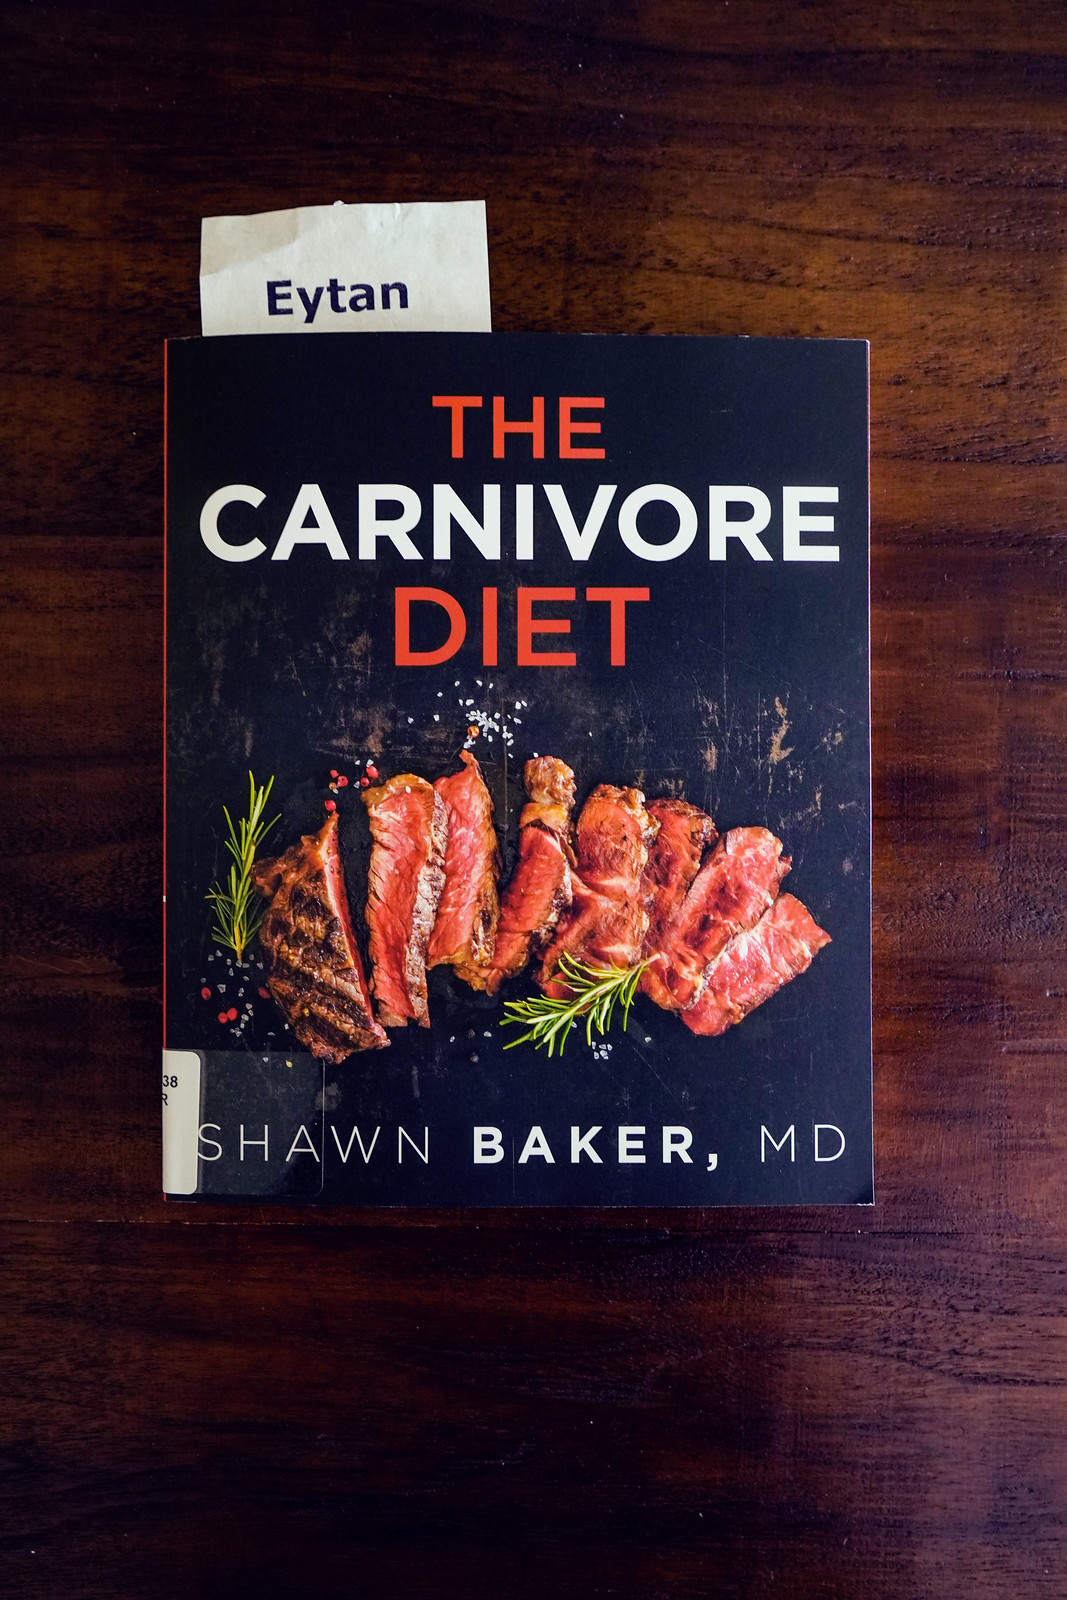 2020.01.02 The Carnivore Diet Book, Shawn Baker, MD, Washington, DC USA 002 10015